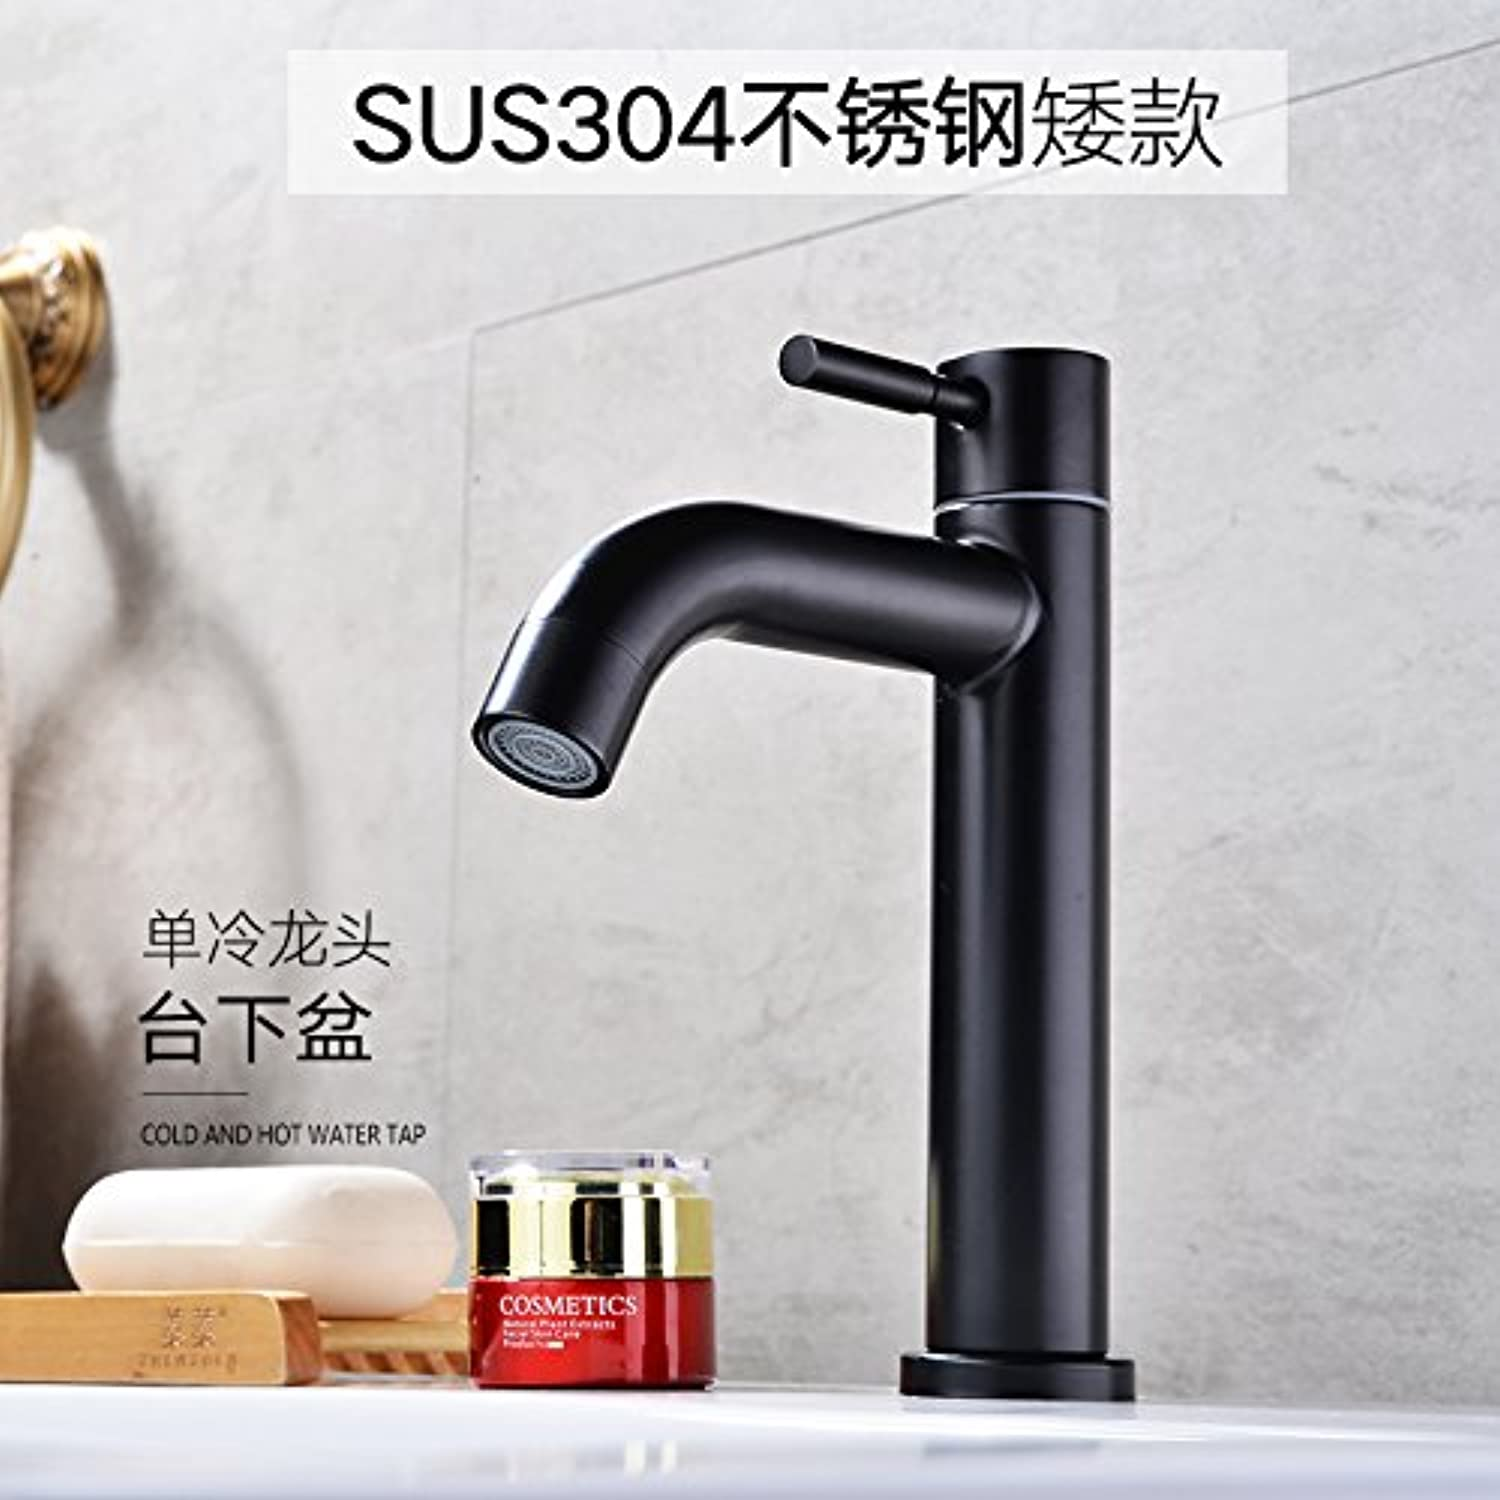 ETERNAL QUALITY Bathroom Sink Basin Tap Brass Mixer Tap Washroom Mixer Faucet One cold water tap washbasin wash-hand basin Single Hole 304 stainless steel fittings Kitche